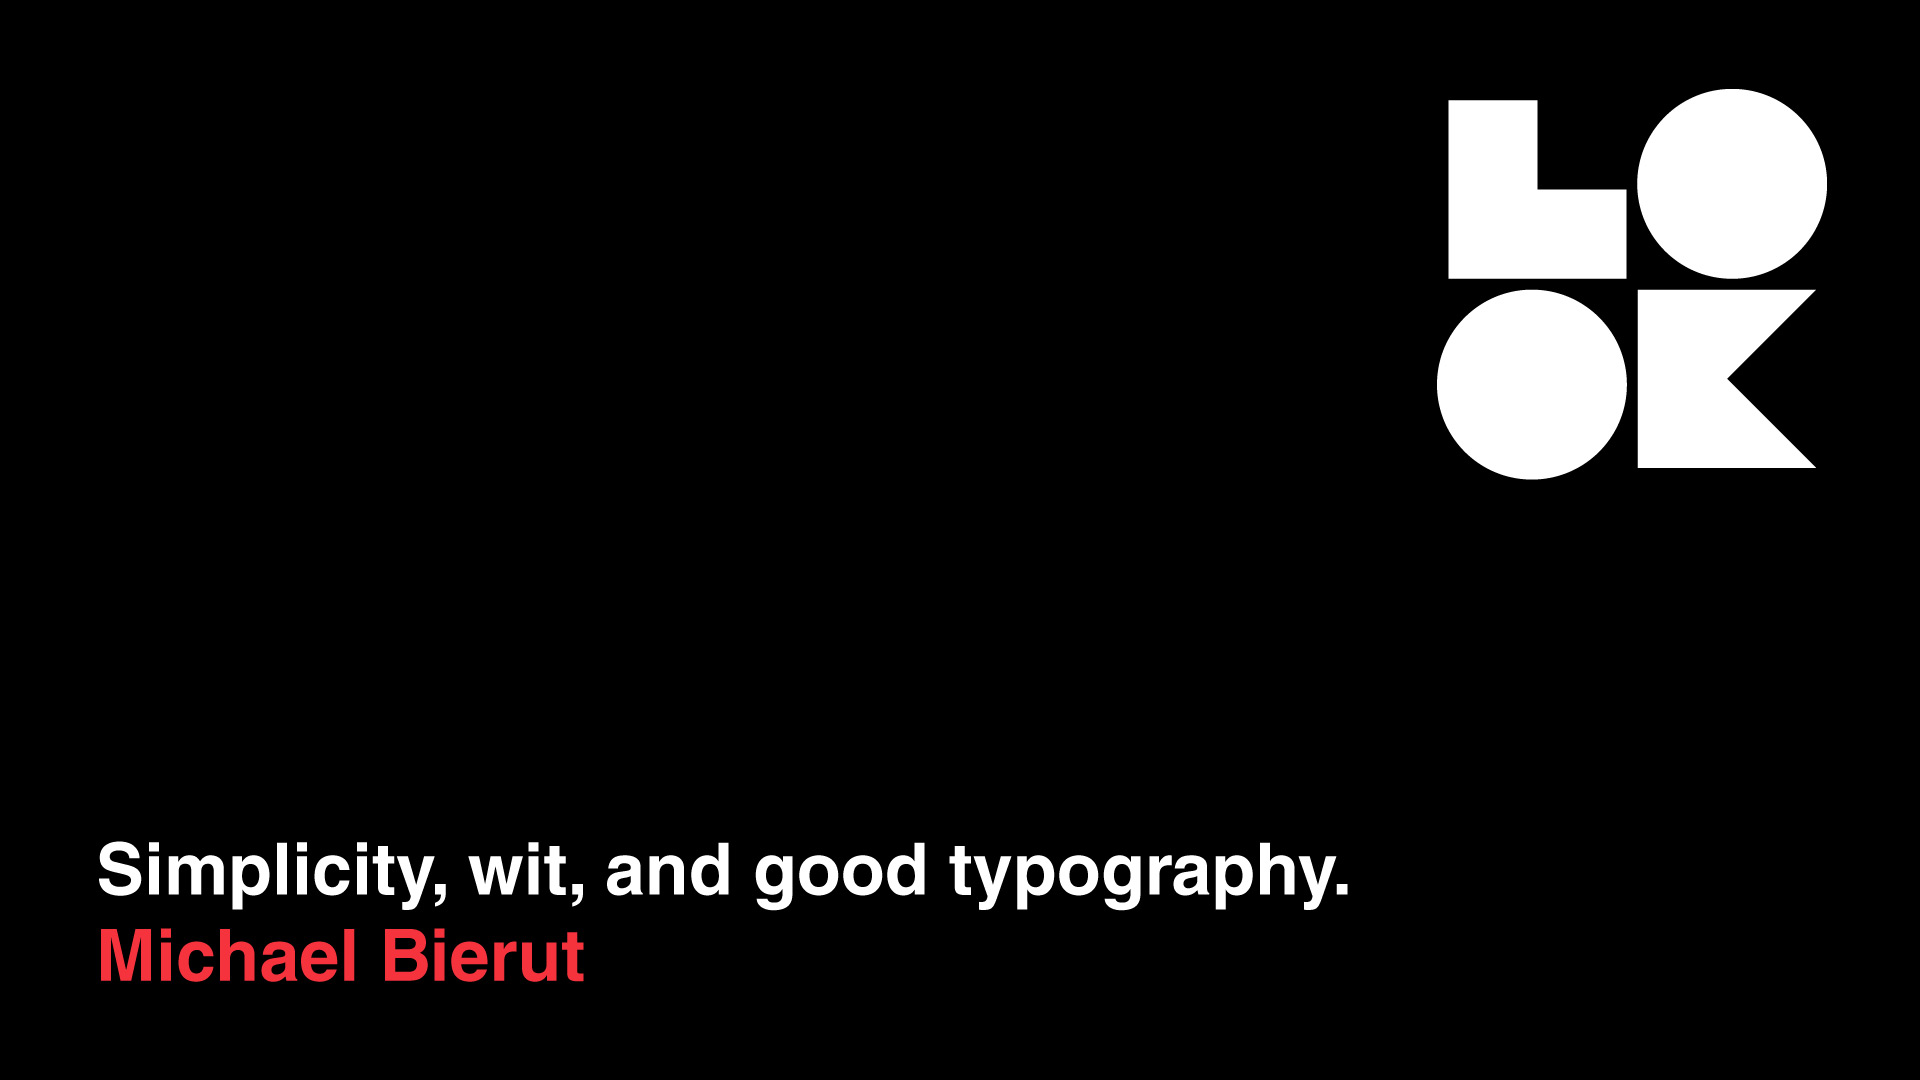 Inspirational Quotes from Famous Designers - Michael Bierut - Simplicity Wit and Good Typography